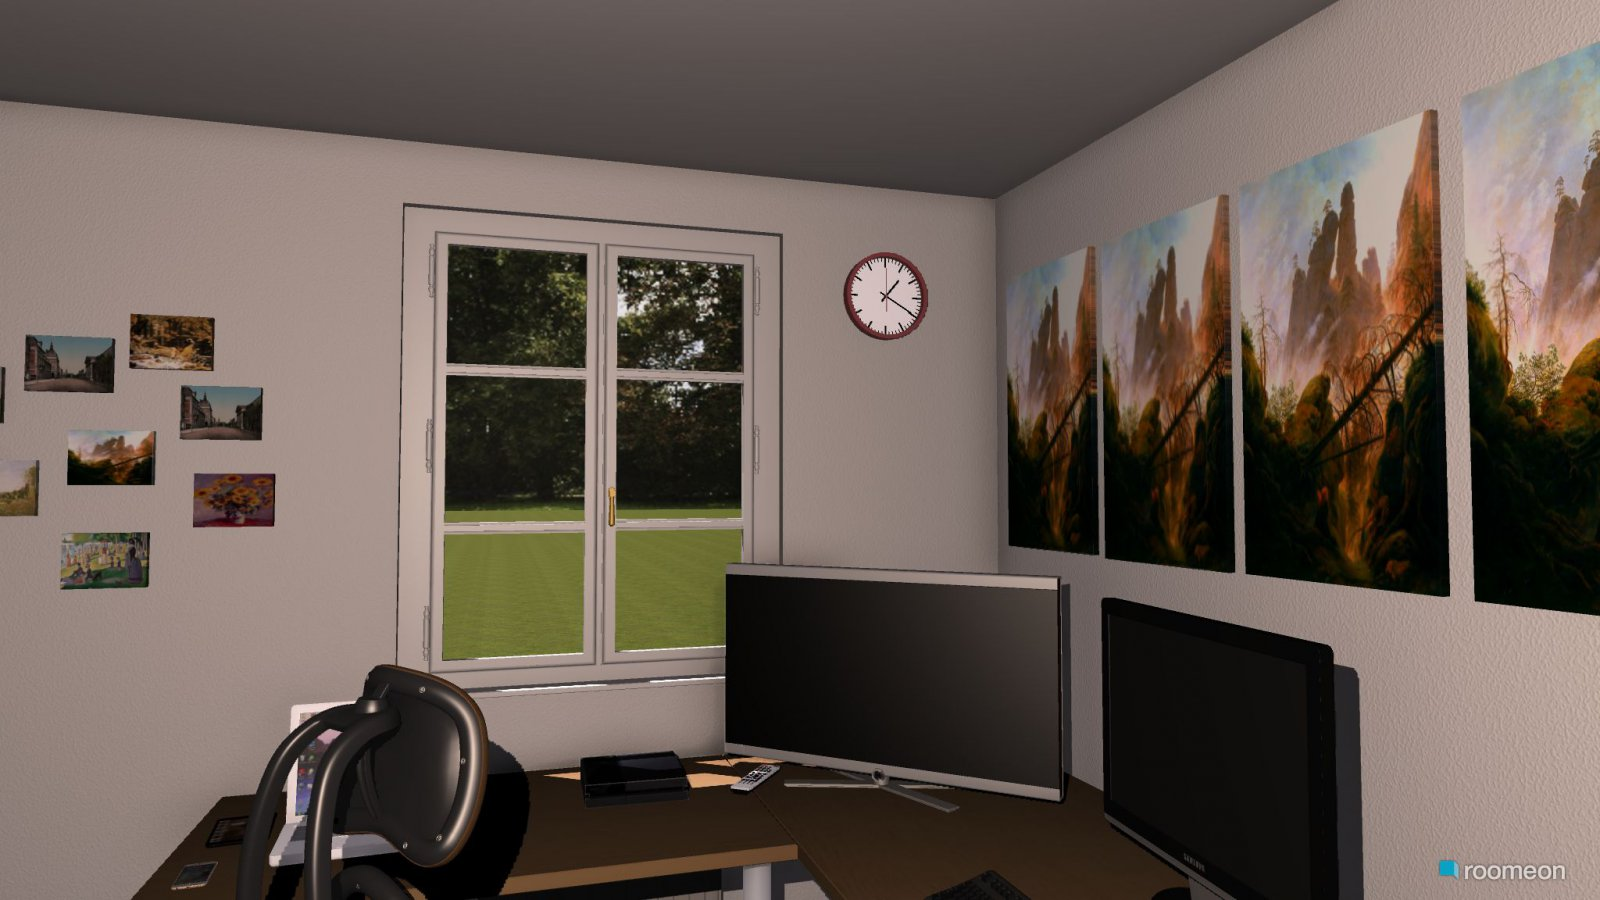 Room Design Neues Gaming Zimmer Roomeon Community